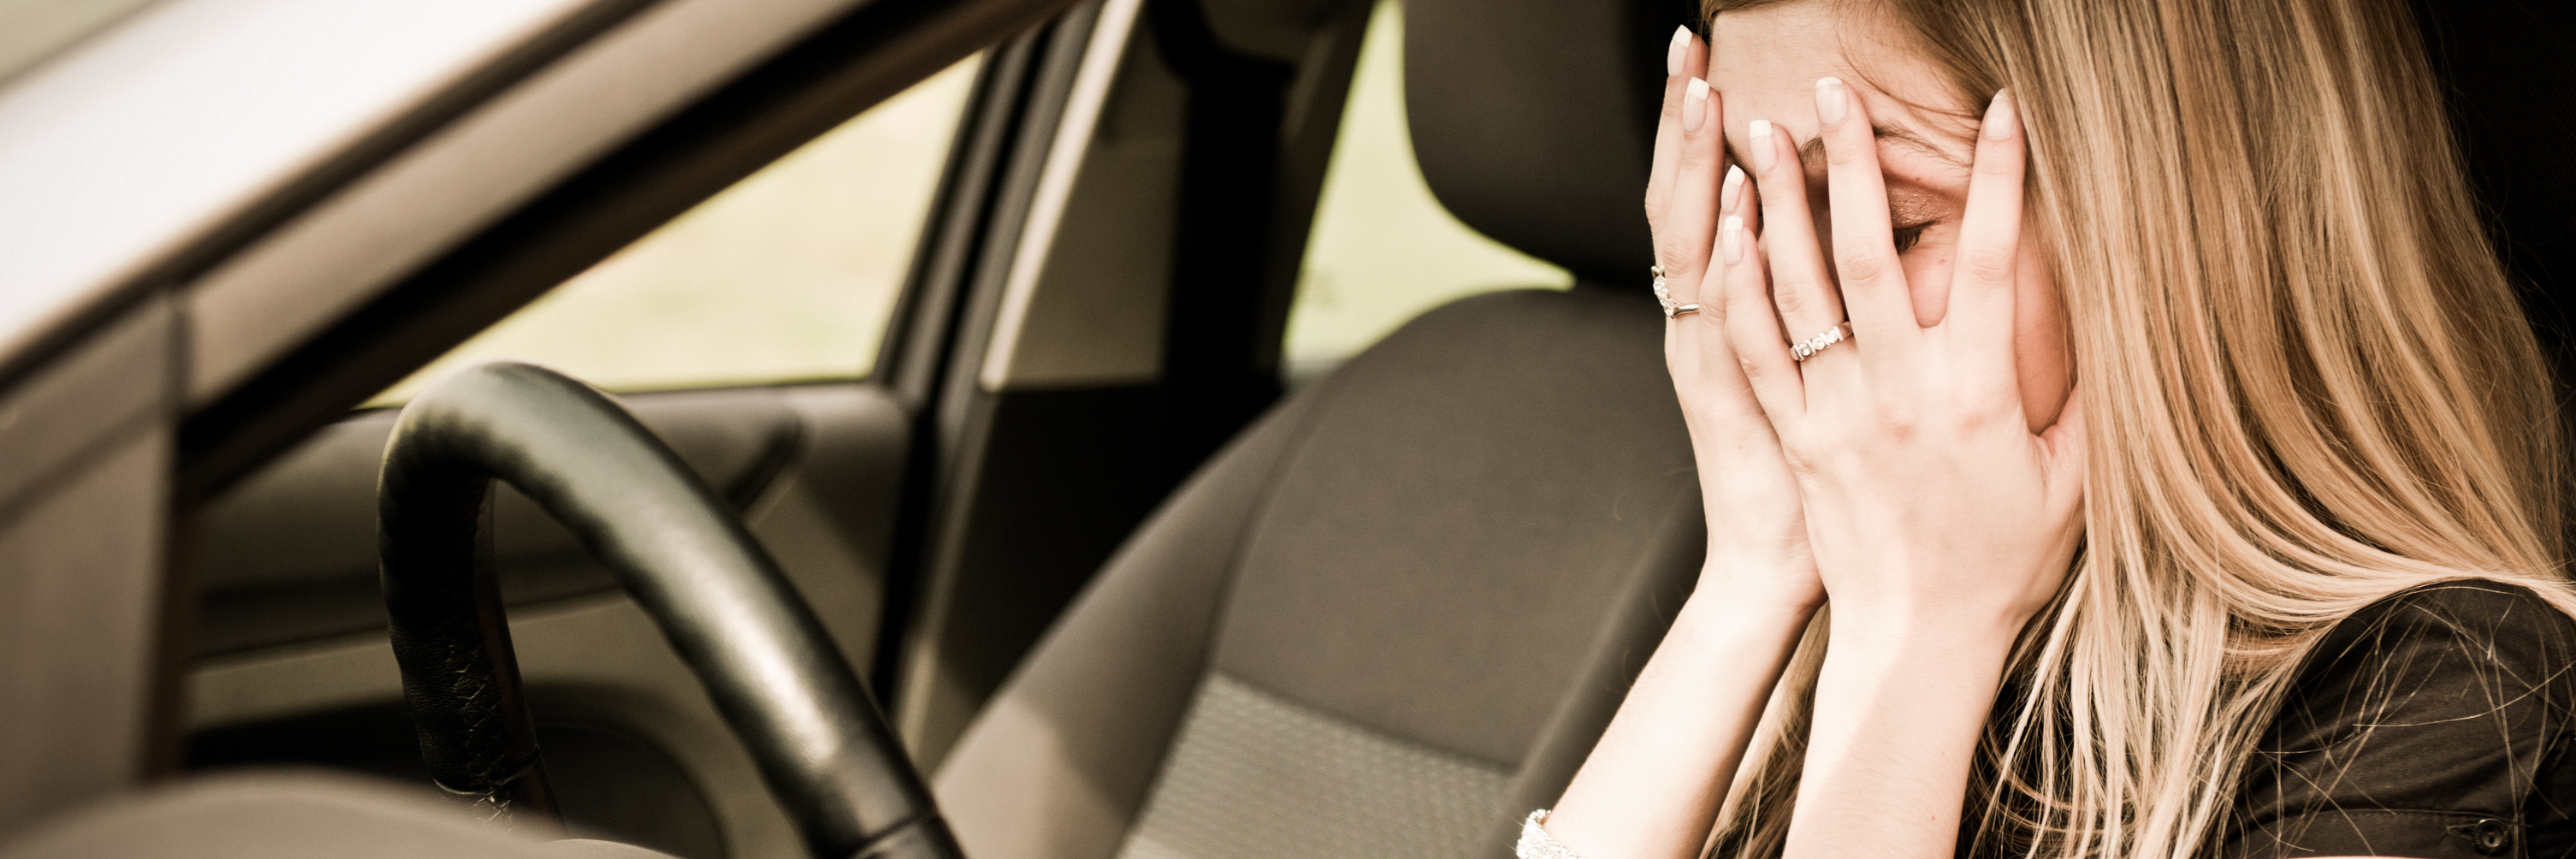 young anxious woman sitting in car with hands over eyes